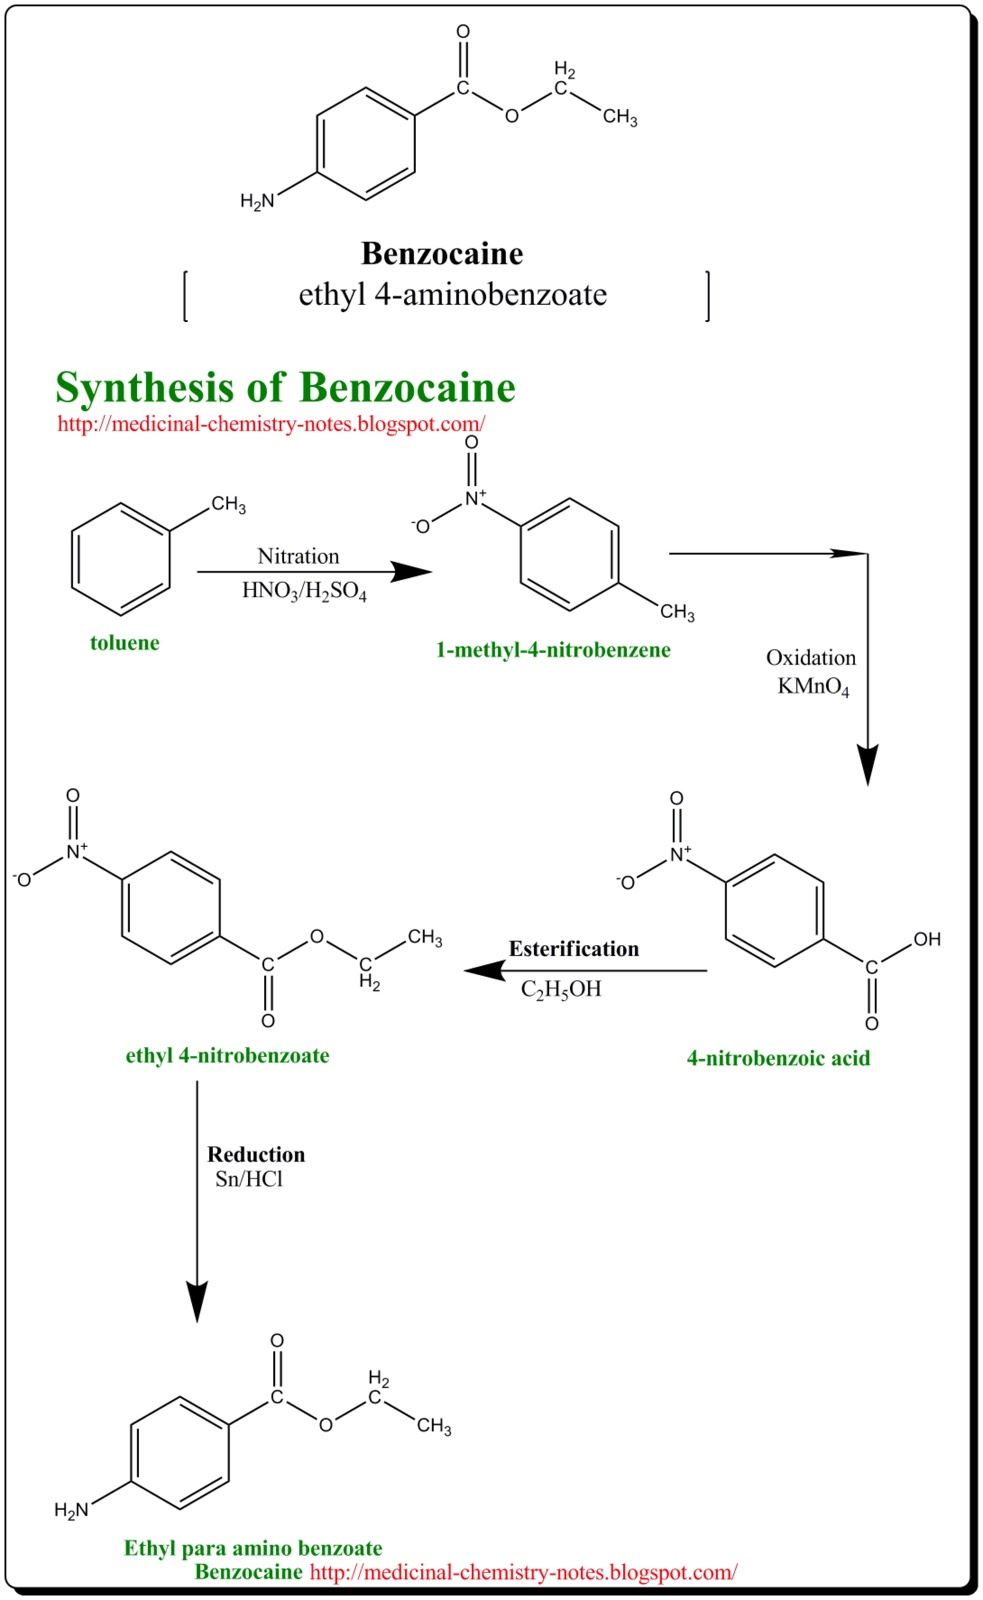 synthesis of benzocaine The cause of methemoglobinemia was 20% benzocaine spray used for local anesthesia before intubation  by the synthesis of an abnormal enzyme, or by the presence of an abnormal hemoglobin (hemoglobin m)  militello ma, garcia mj, sabik em benzocaine-induced methemoglobinemia: experience from a high-volume transesophageal.